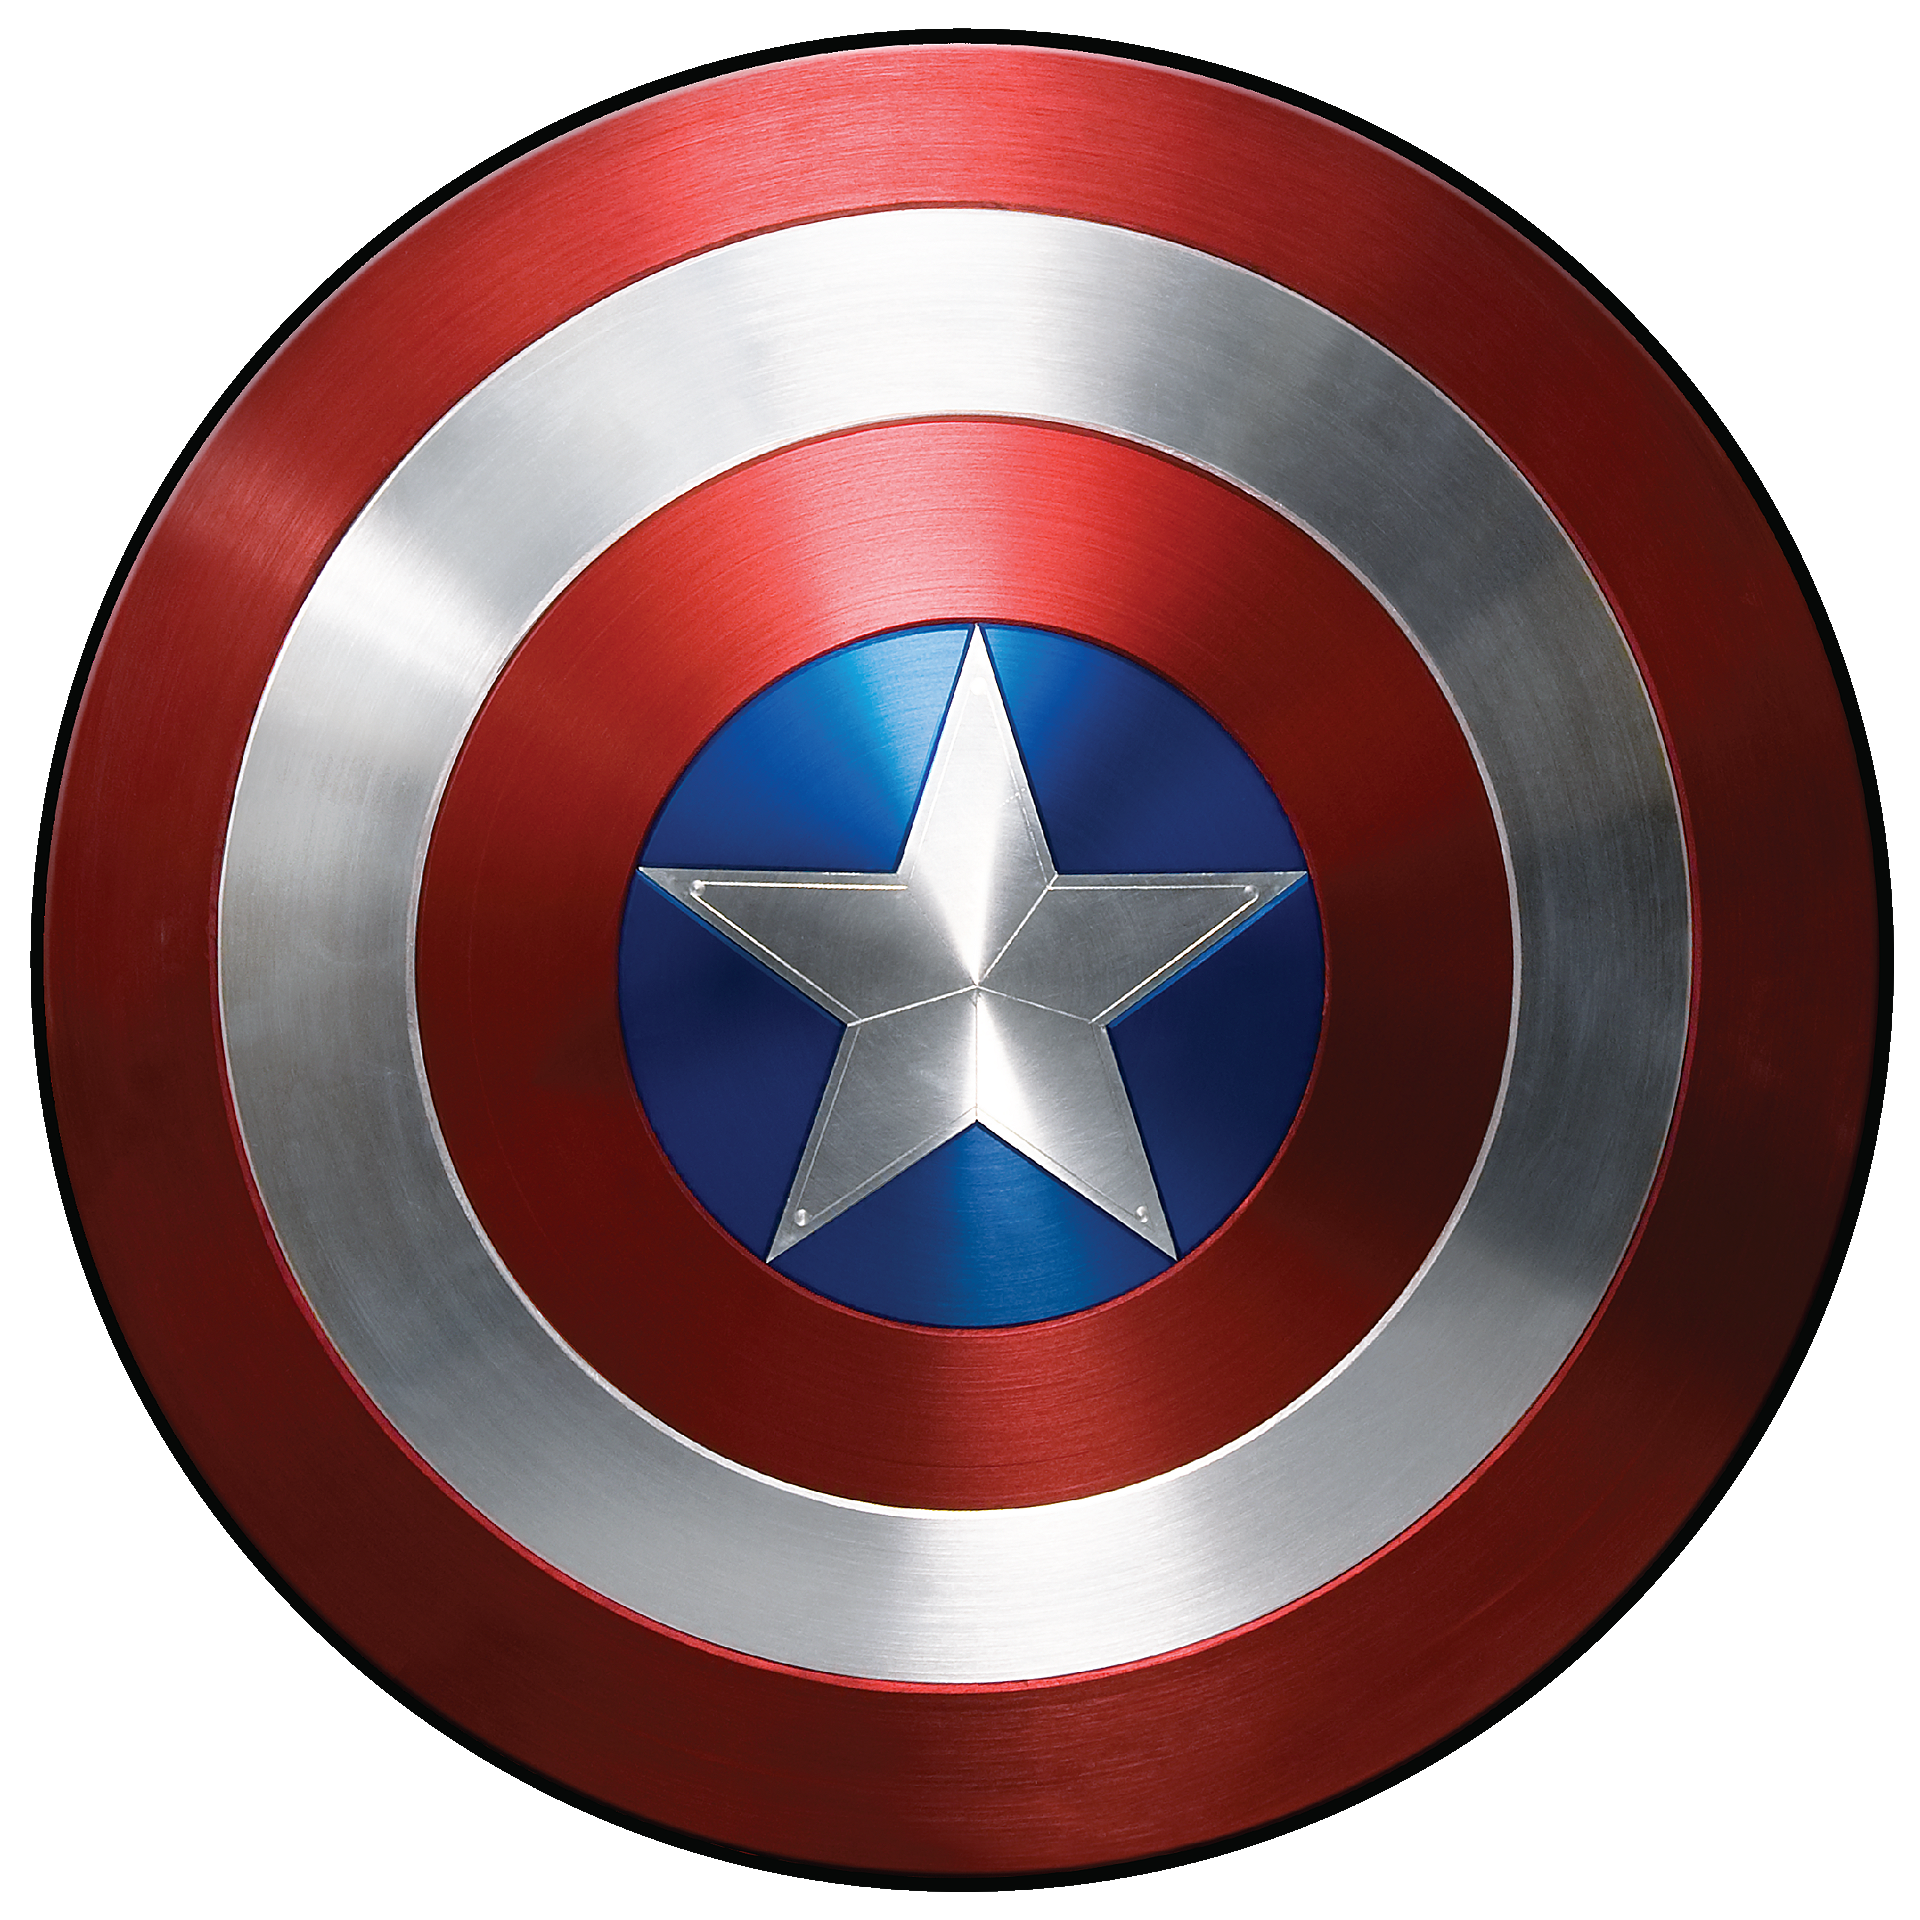 Captain america shield .png. Image png marvel movies